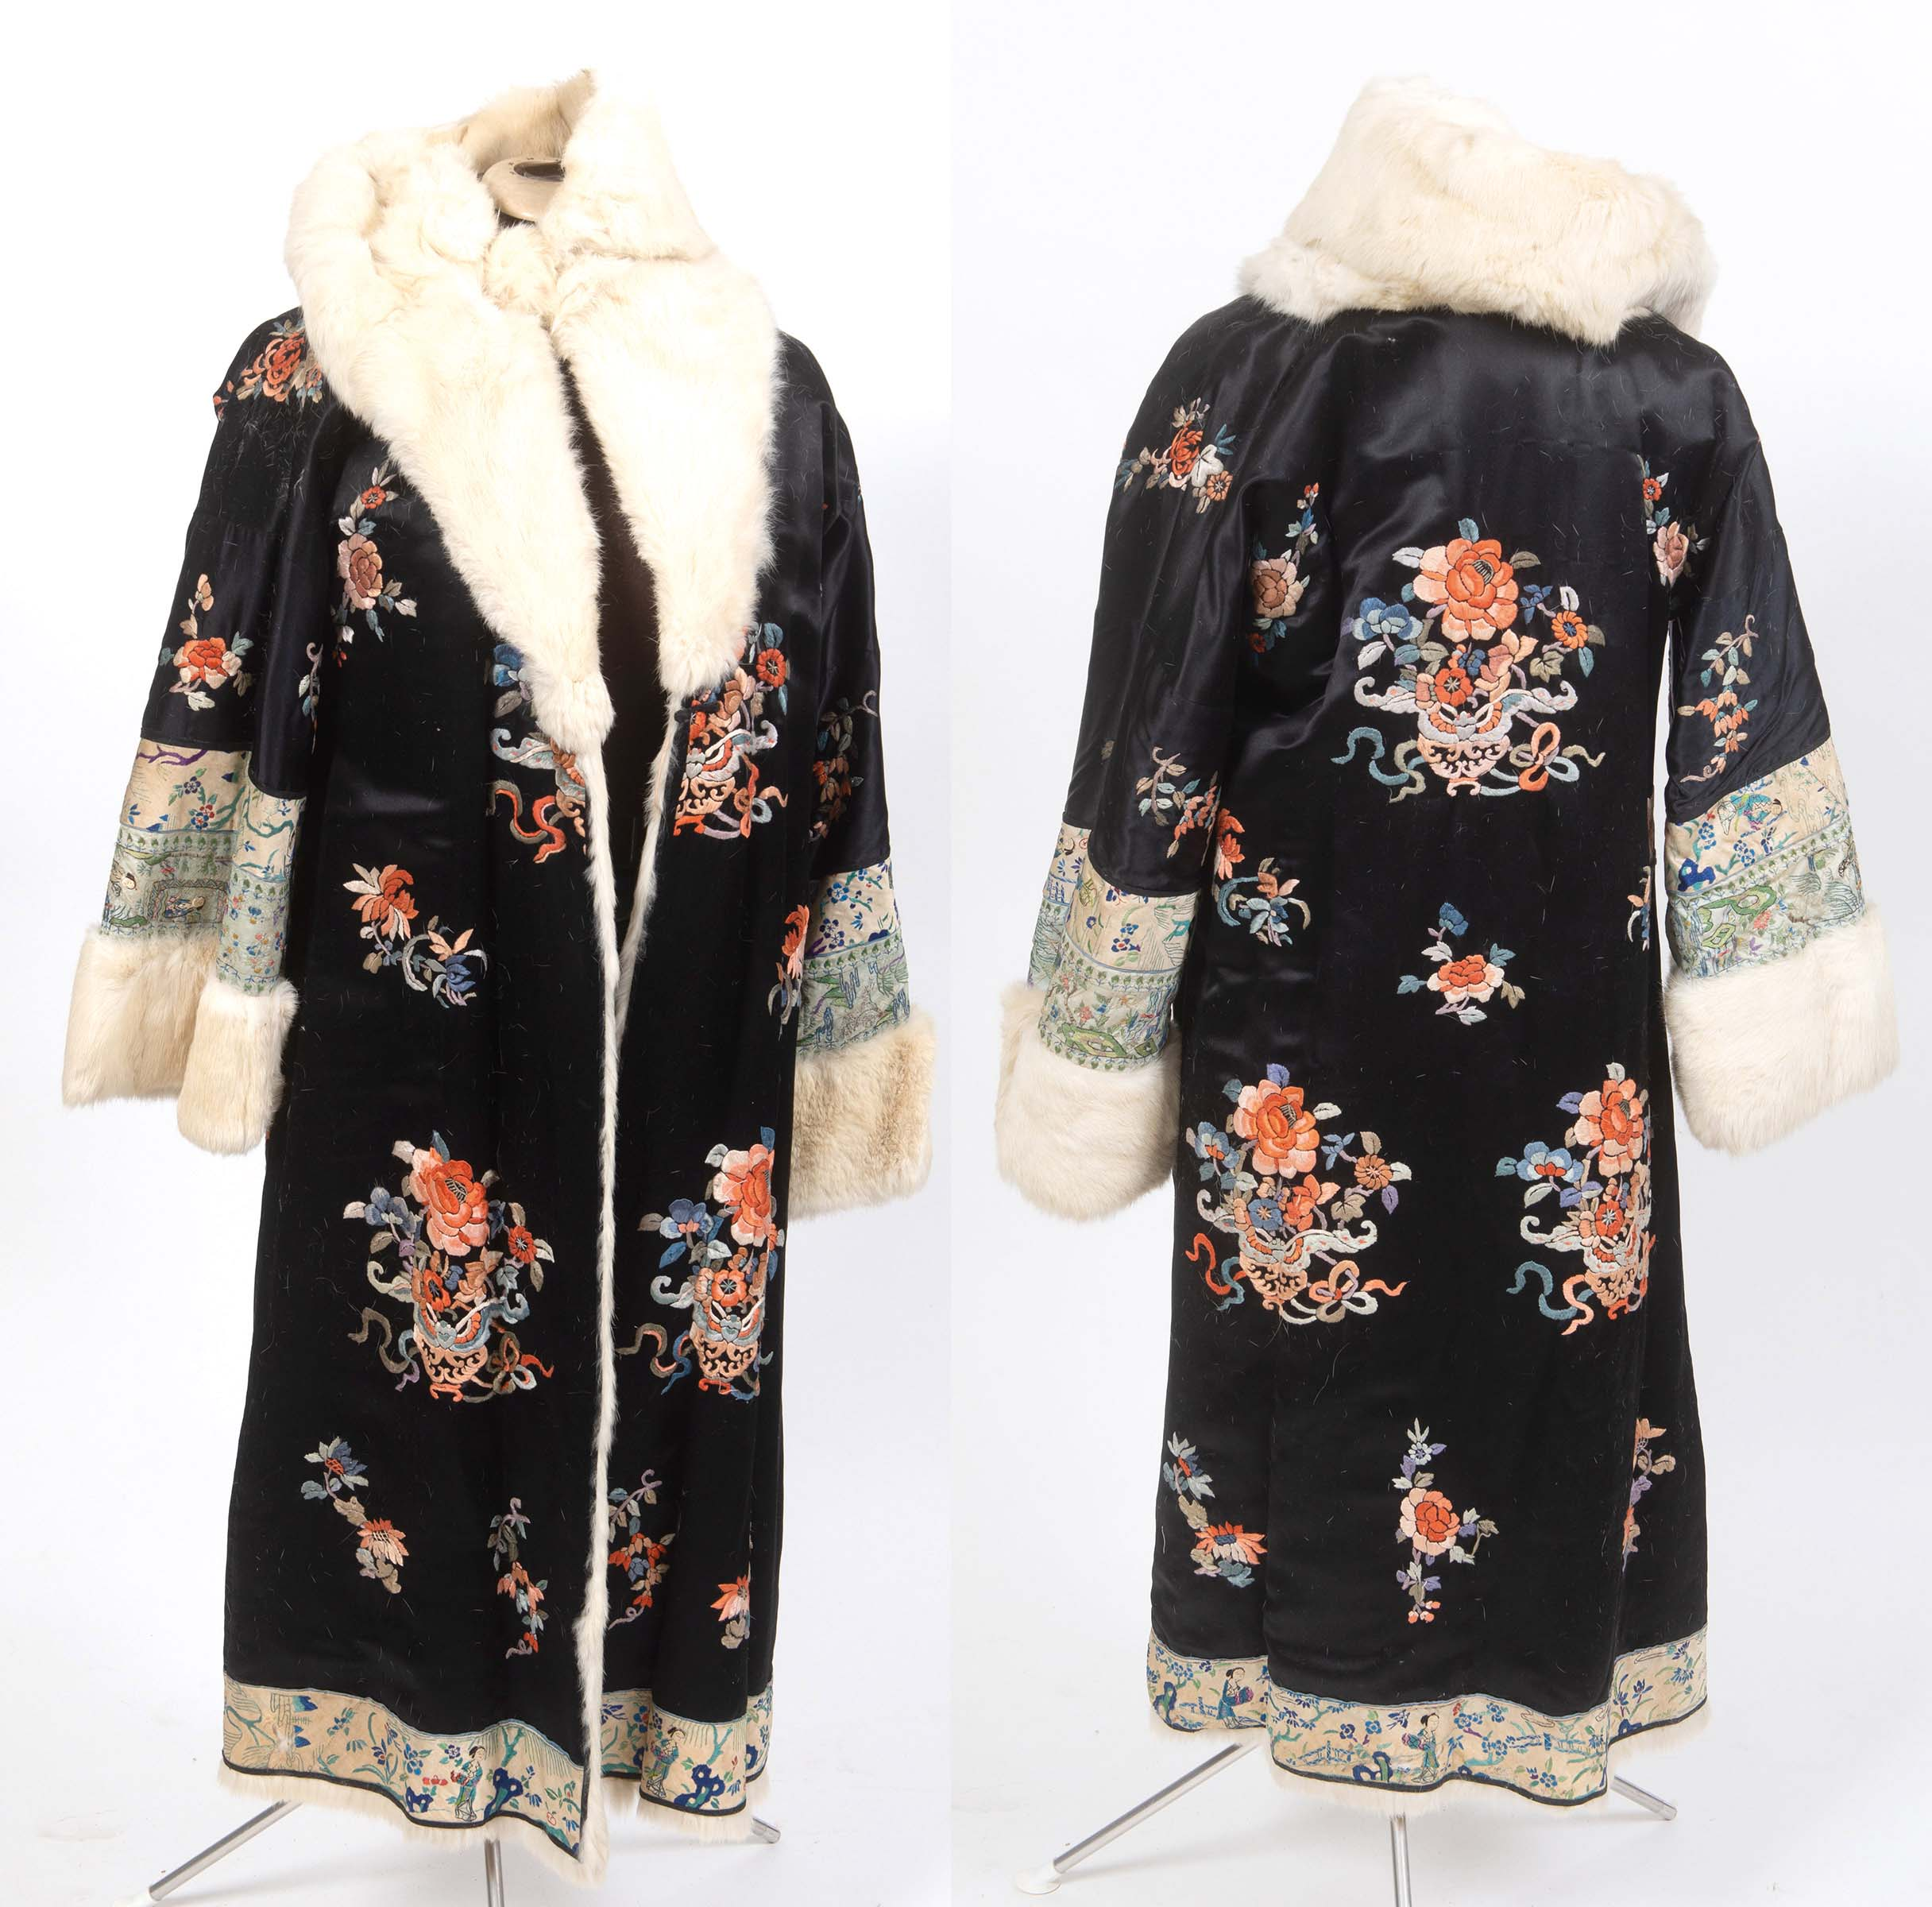 Lot 1884 - CHINESE FUR LINED EMBROIDERED COAT a fur lined coat adapted from a black silk Chinese robe,